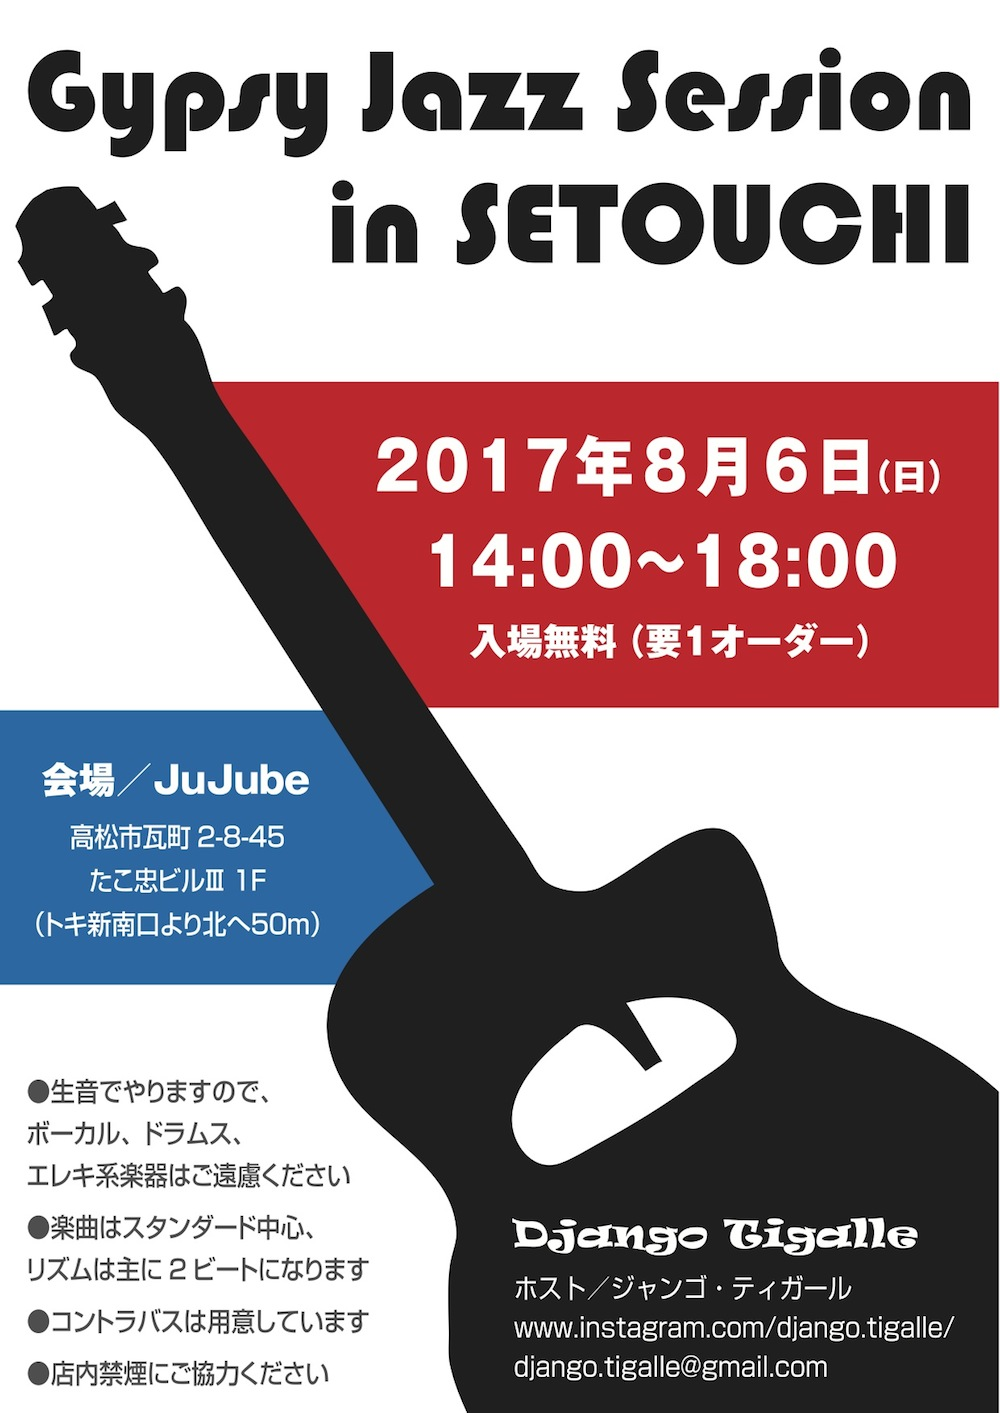 Gypsy Jazz Session in SETOUCHI